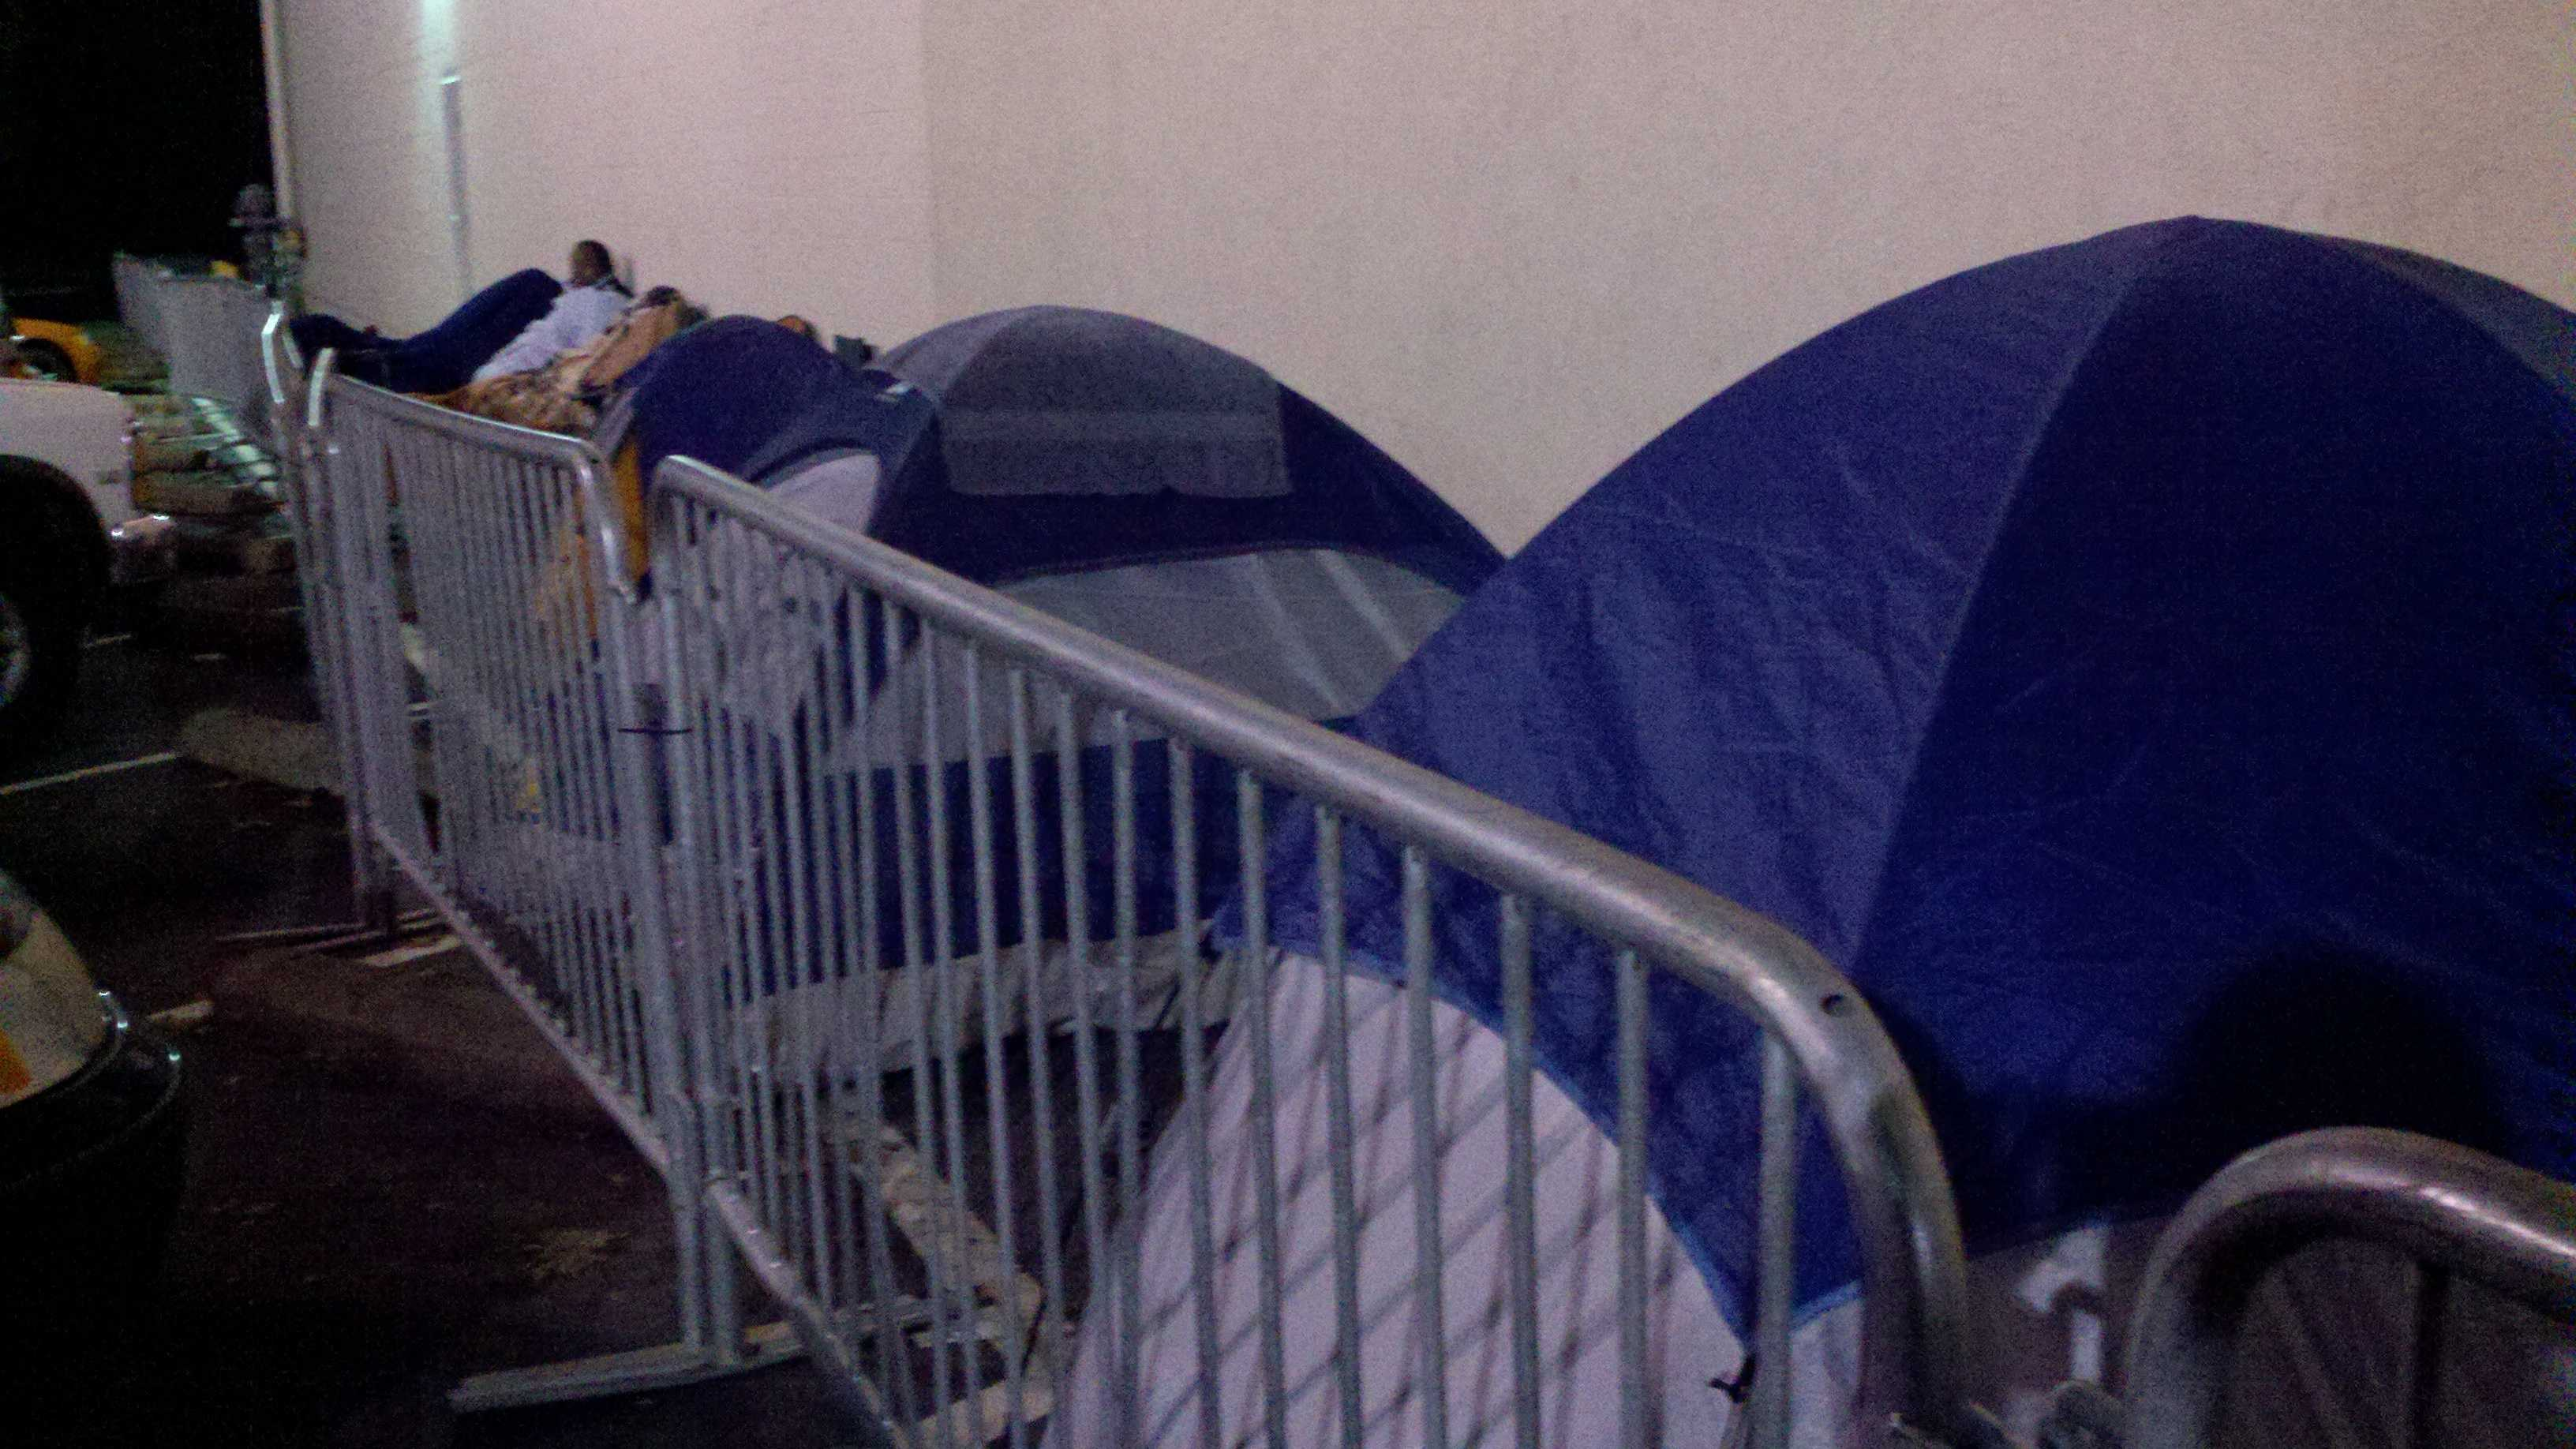 Camping out Black Friday